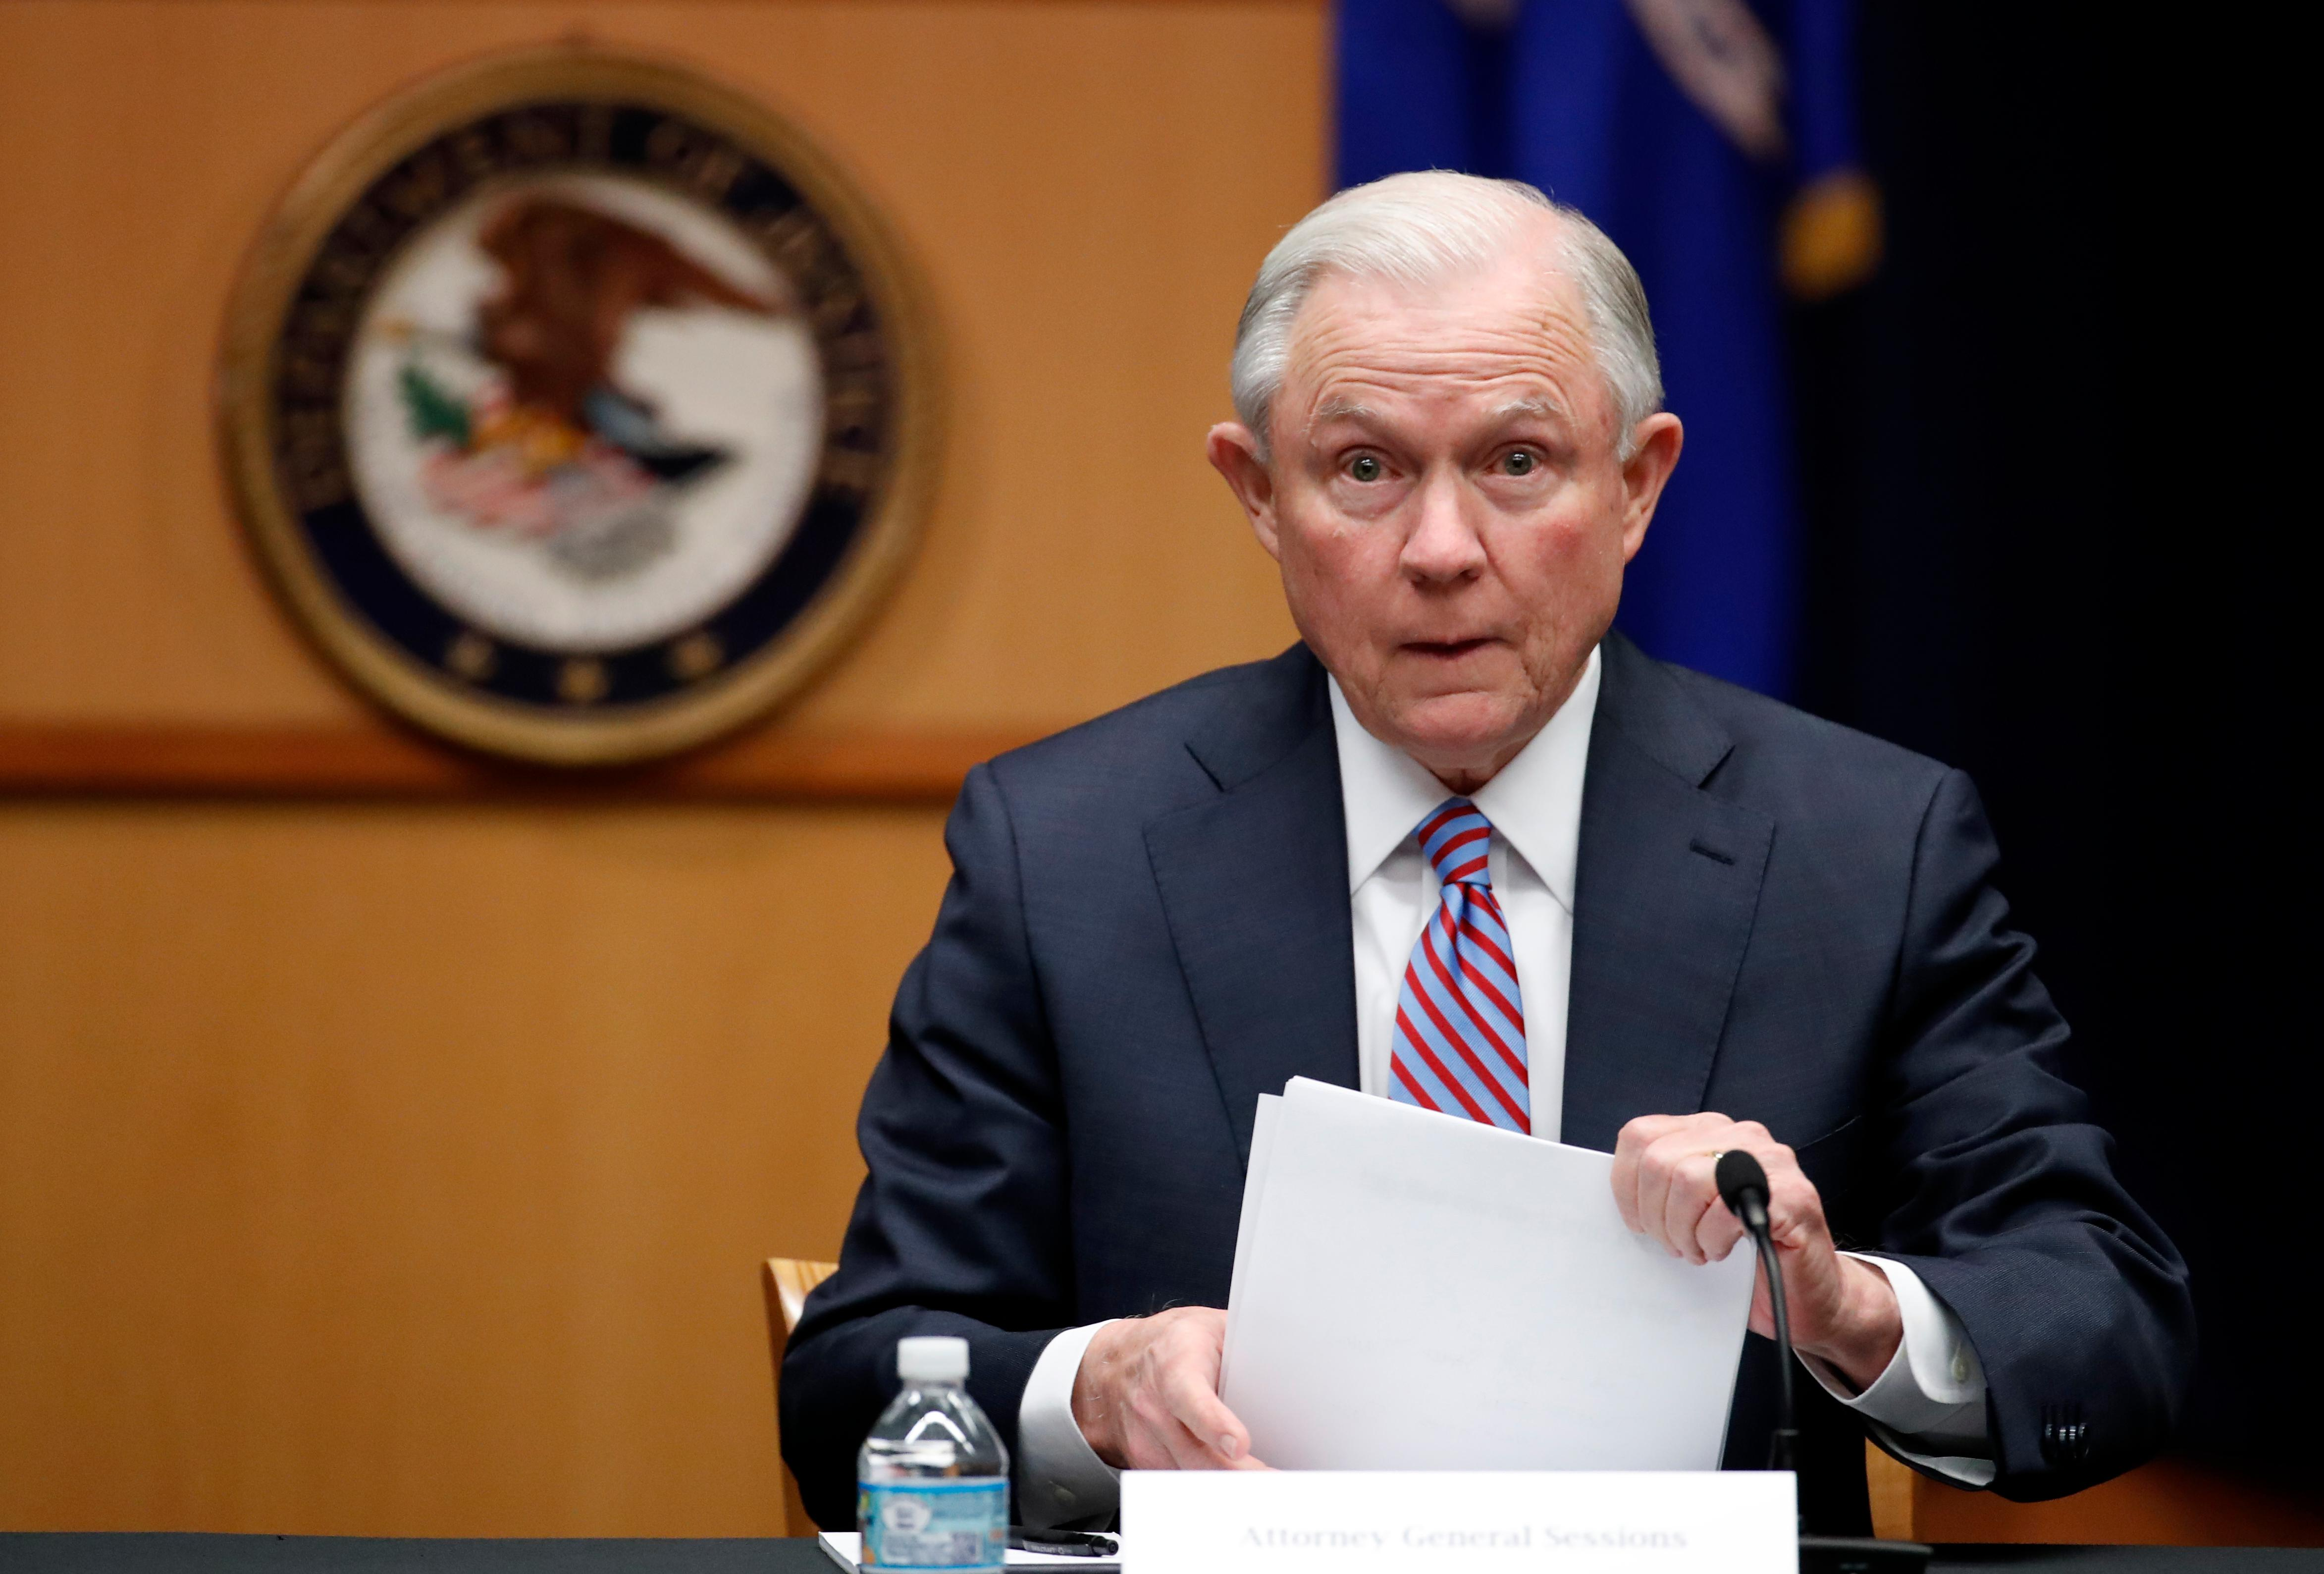 "In this April 18, 2017 file photo Attorney General Jeff Sessions prepares to speak before a meeting of the Attorney General's Organized Crime Council and Organized Crime Drug Enforcement Task Forces (OCDETF) Executive Committee to discuss implementation of the President's Executive Order 13773, at the Department of Justice in Washington. Hawaii's Democratic lawmakers are criticizing Attorney General Jeff Sessions after he expressed amazement on a radio show that a ""judge sitting on an island in the Pacific"" could stop the president's travel ban. U.S. Sen. Mazie Hirono on Thursday tried to give Sessions a civics lesson on Twitter, saying Hawaii has been a U.S. state for 58 years. (AP file Photo/Alex Brandon)"